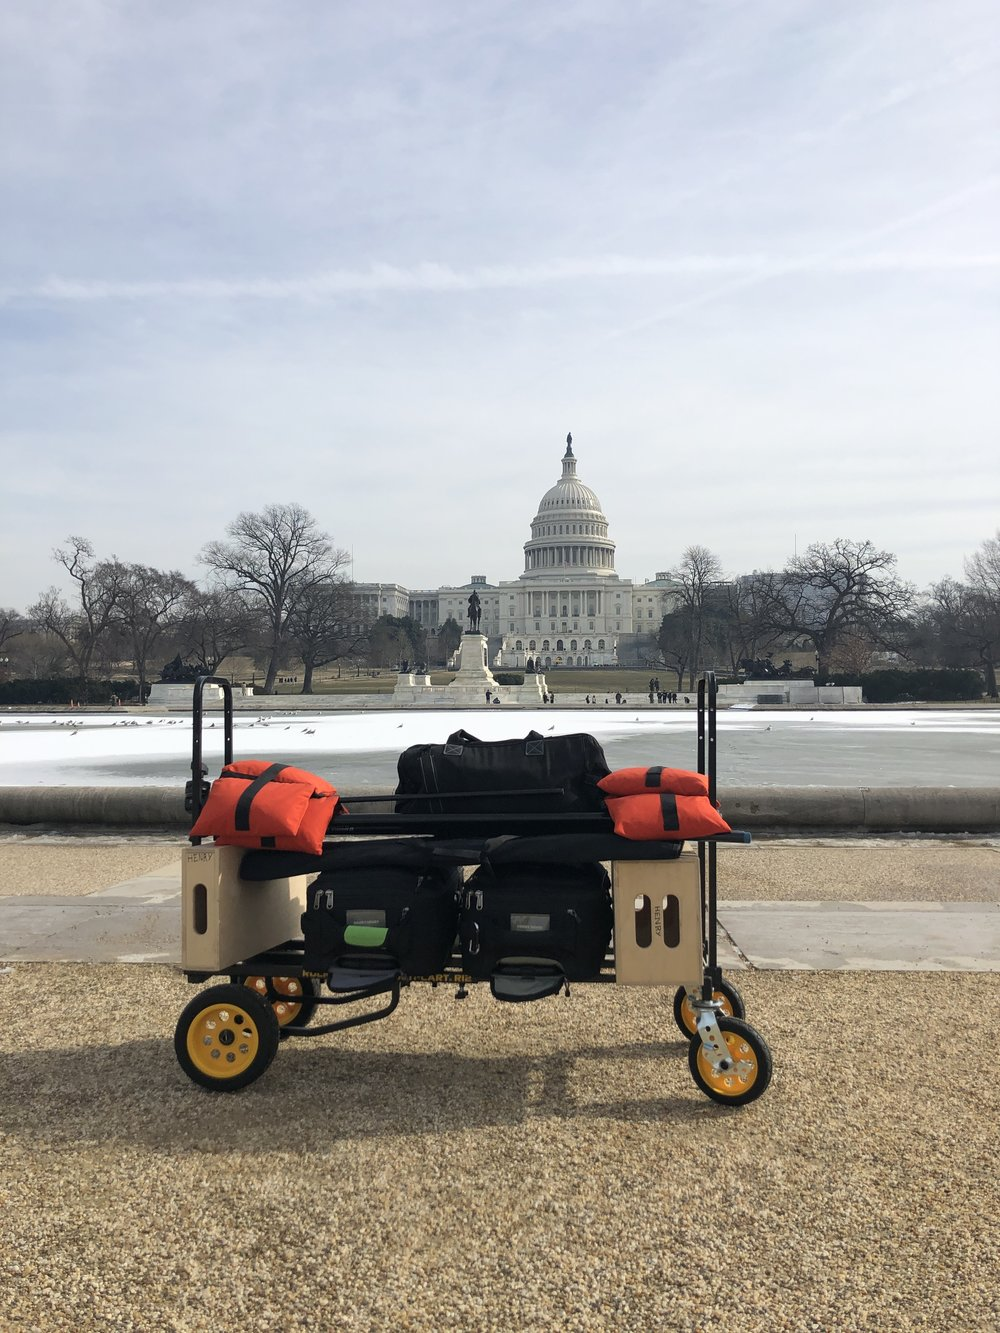 Rock-N-Roller Mulitcart in front of the US Capitol.